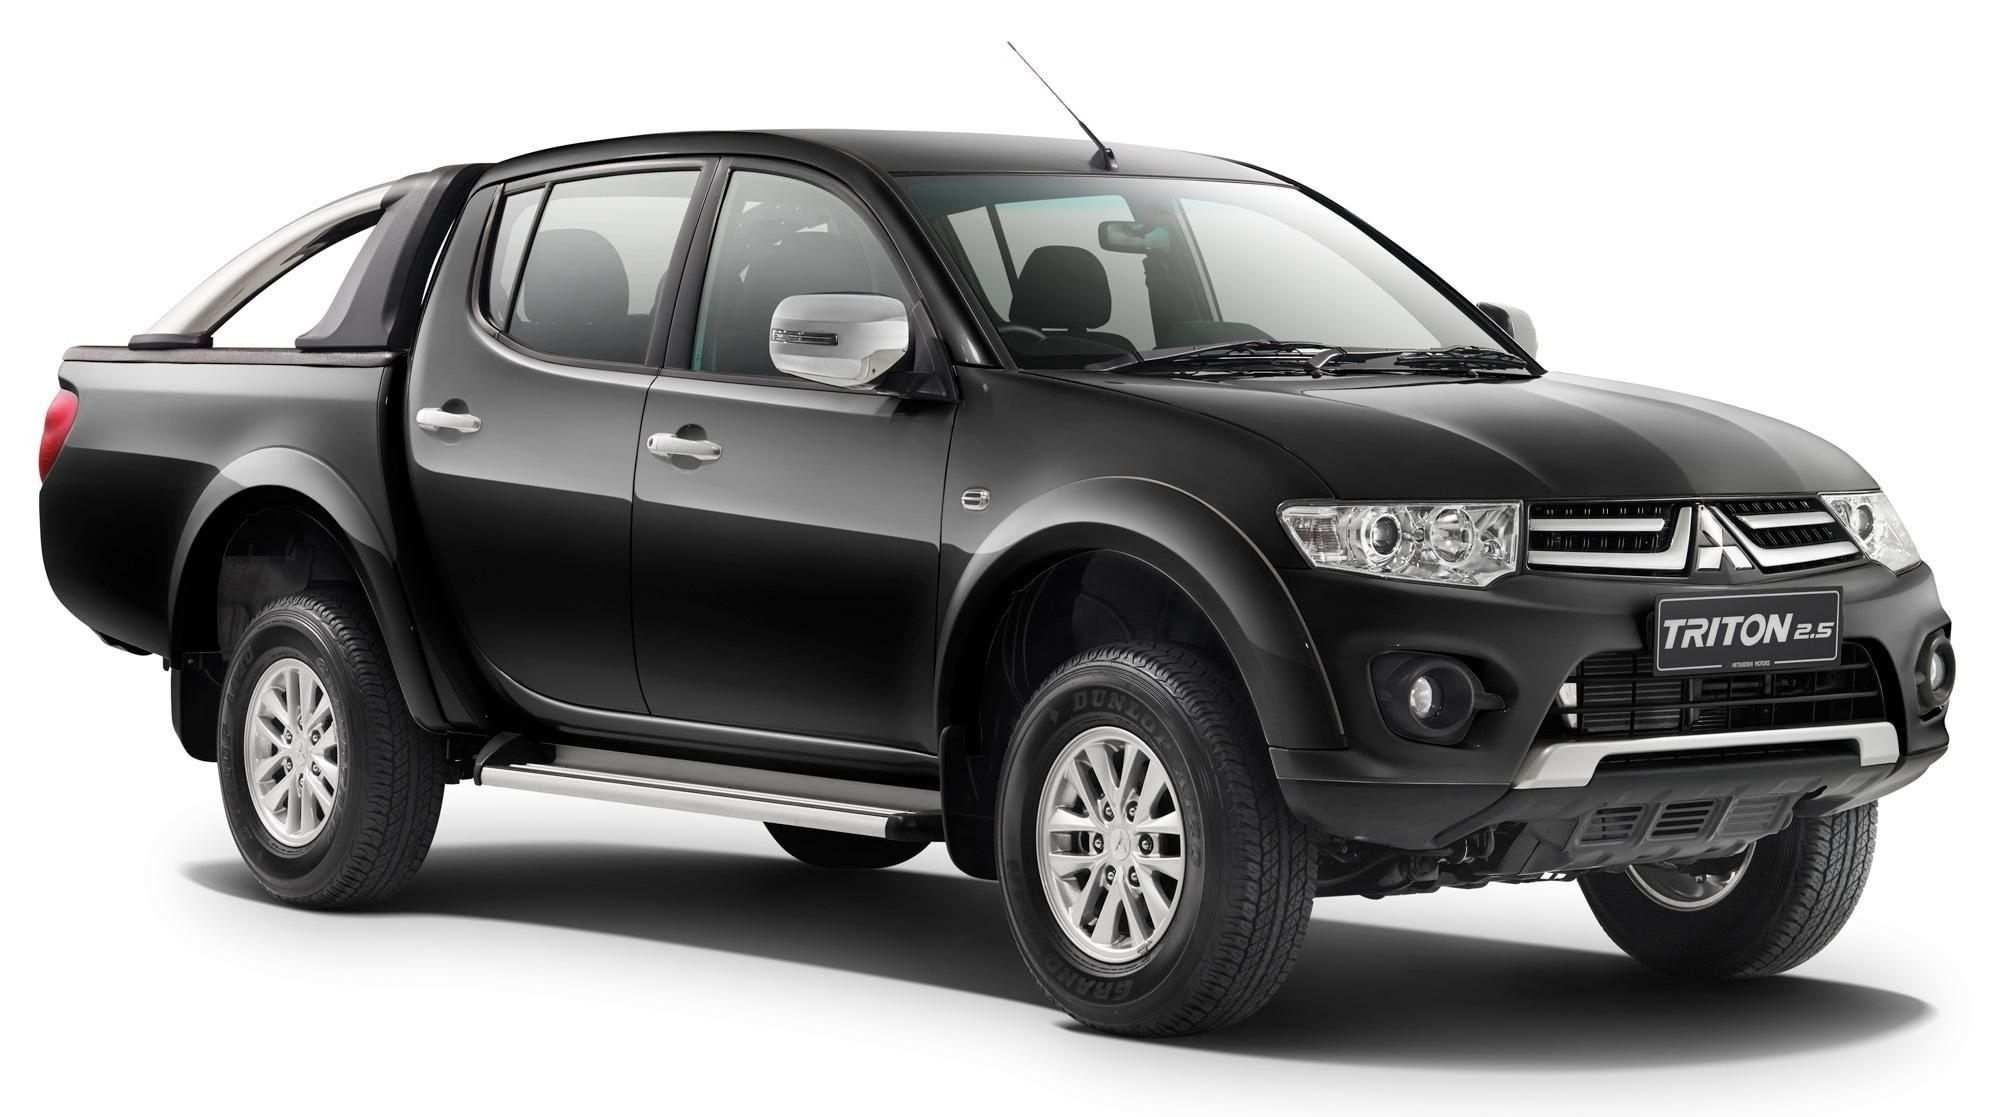 35 New 2019 Mitsubishi Triton Perfect Outdoor First Drive with 2019 Mitsubishi Triton Perfect Outdoor